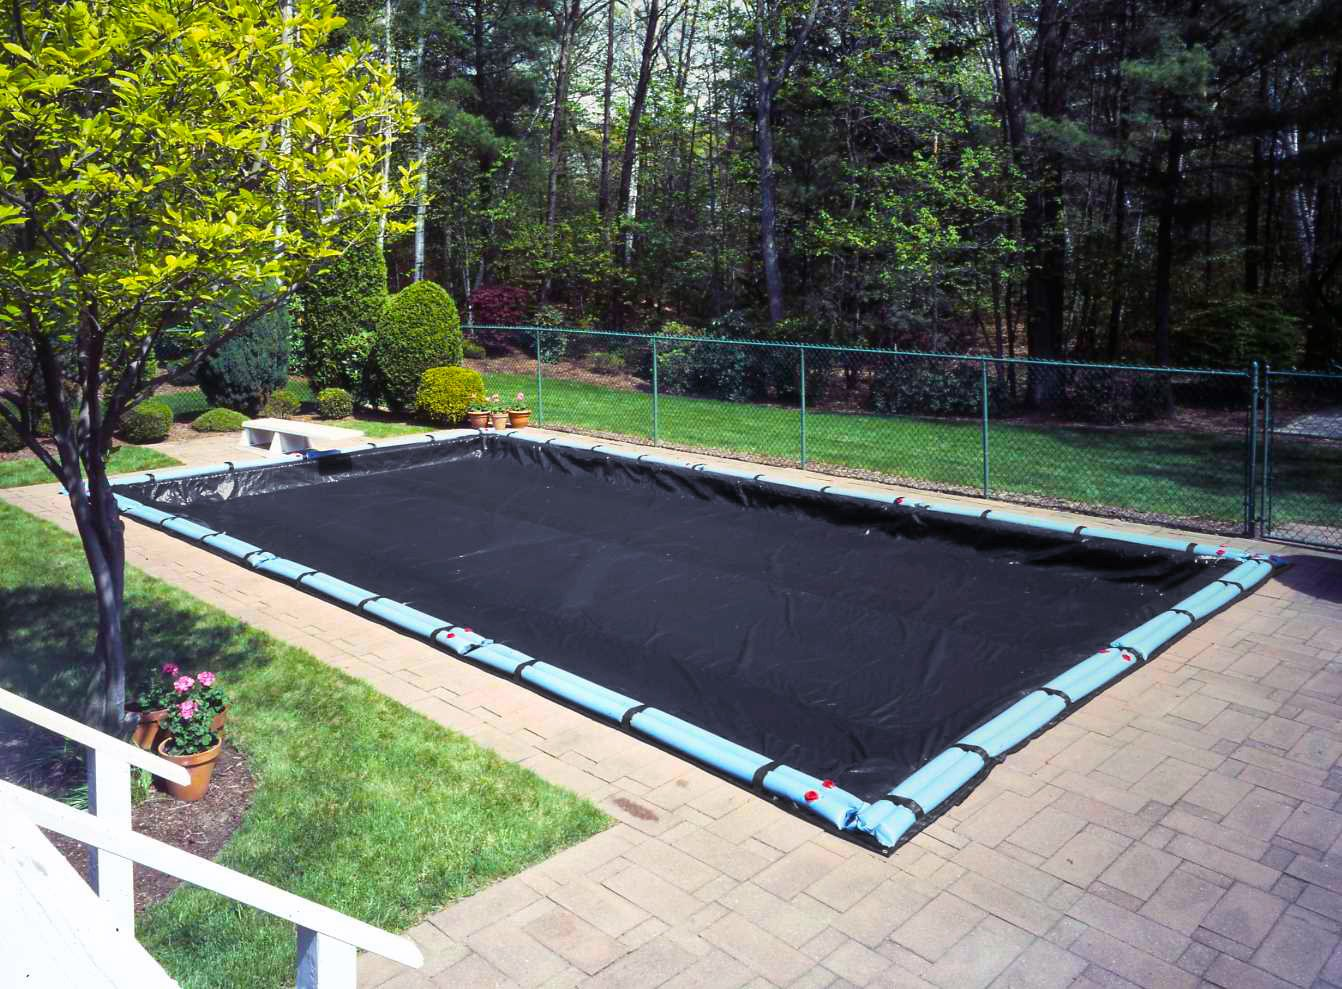 Amazon.com : Economy In-Ground Winter Swimming Pool Cover with Water ...